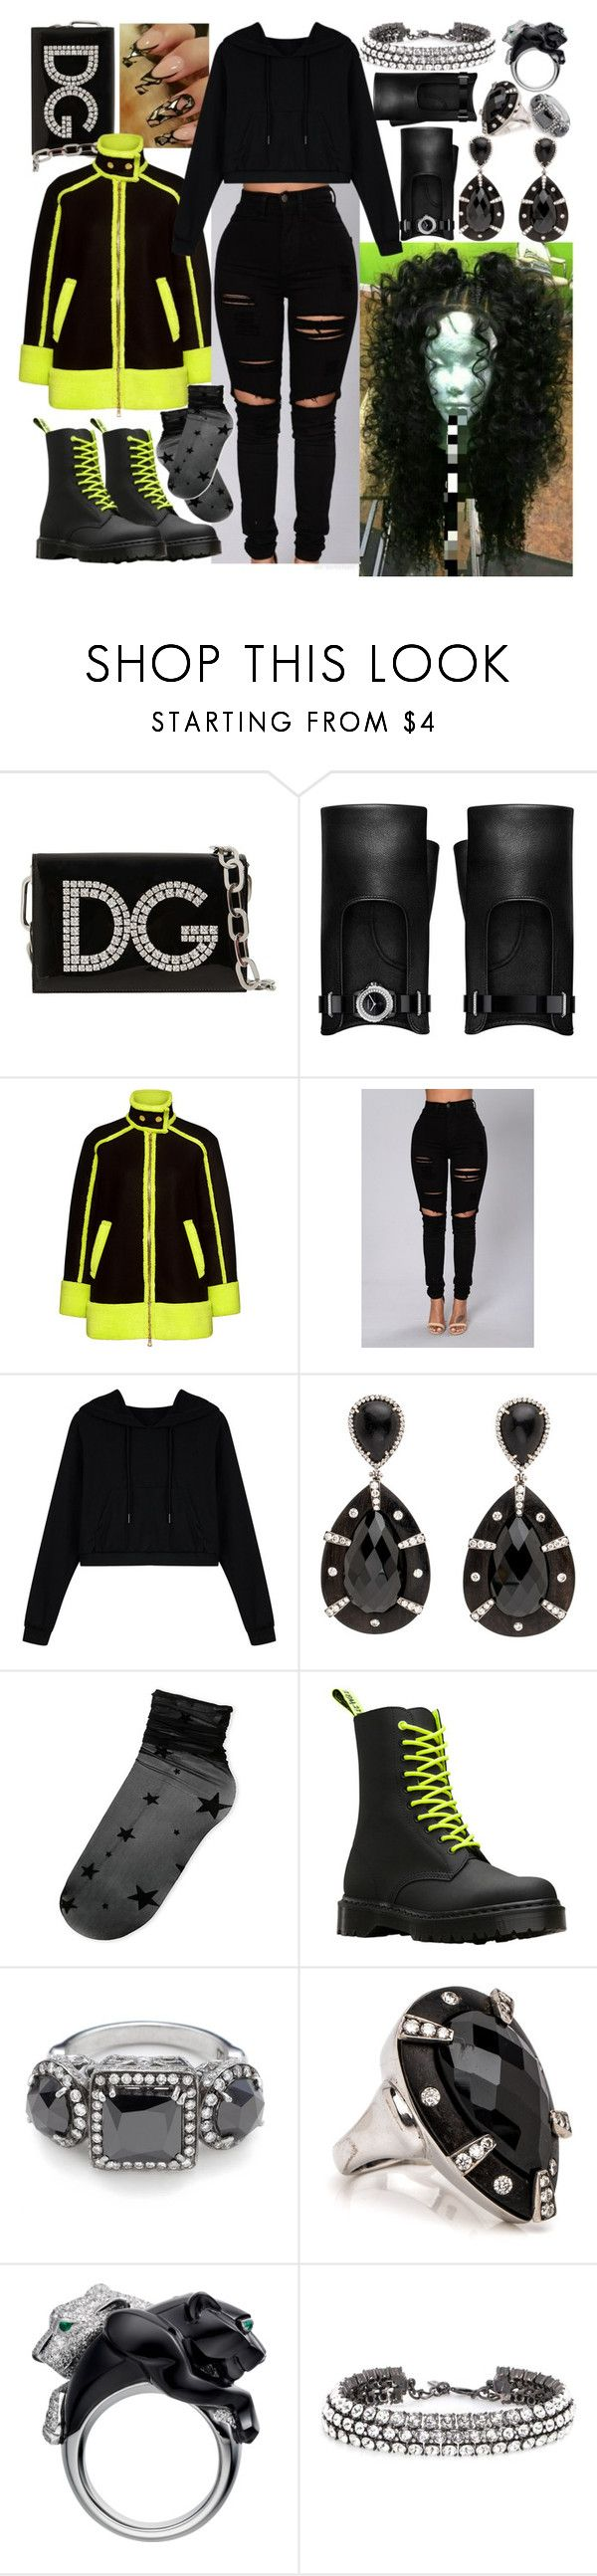 """""""My color"""" by goodgirldeja ❤ liked on Polyvore featuring Dolce&Gabbana, Chanel, Boutique Moschino, WithChic, Steve Madden, Dr. Martens, Oscar de la Renta and allblackoutfit"""